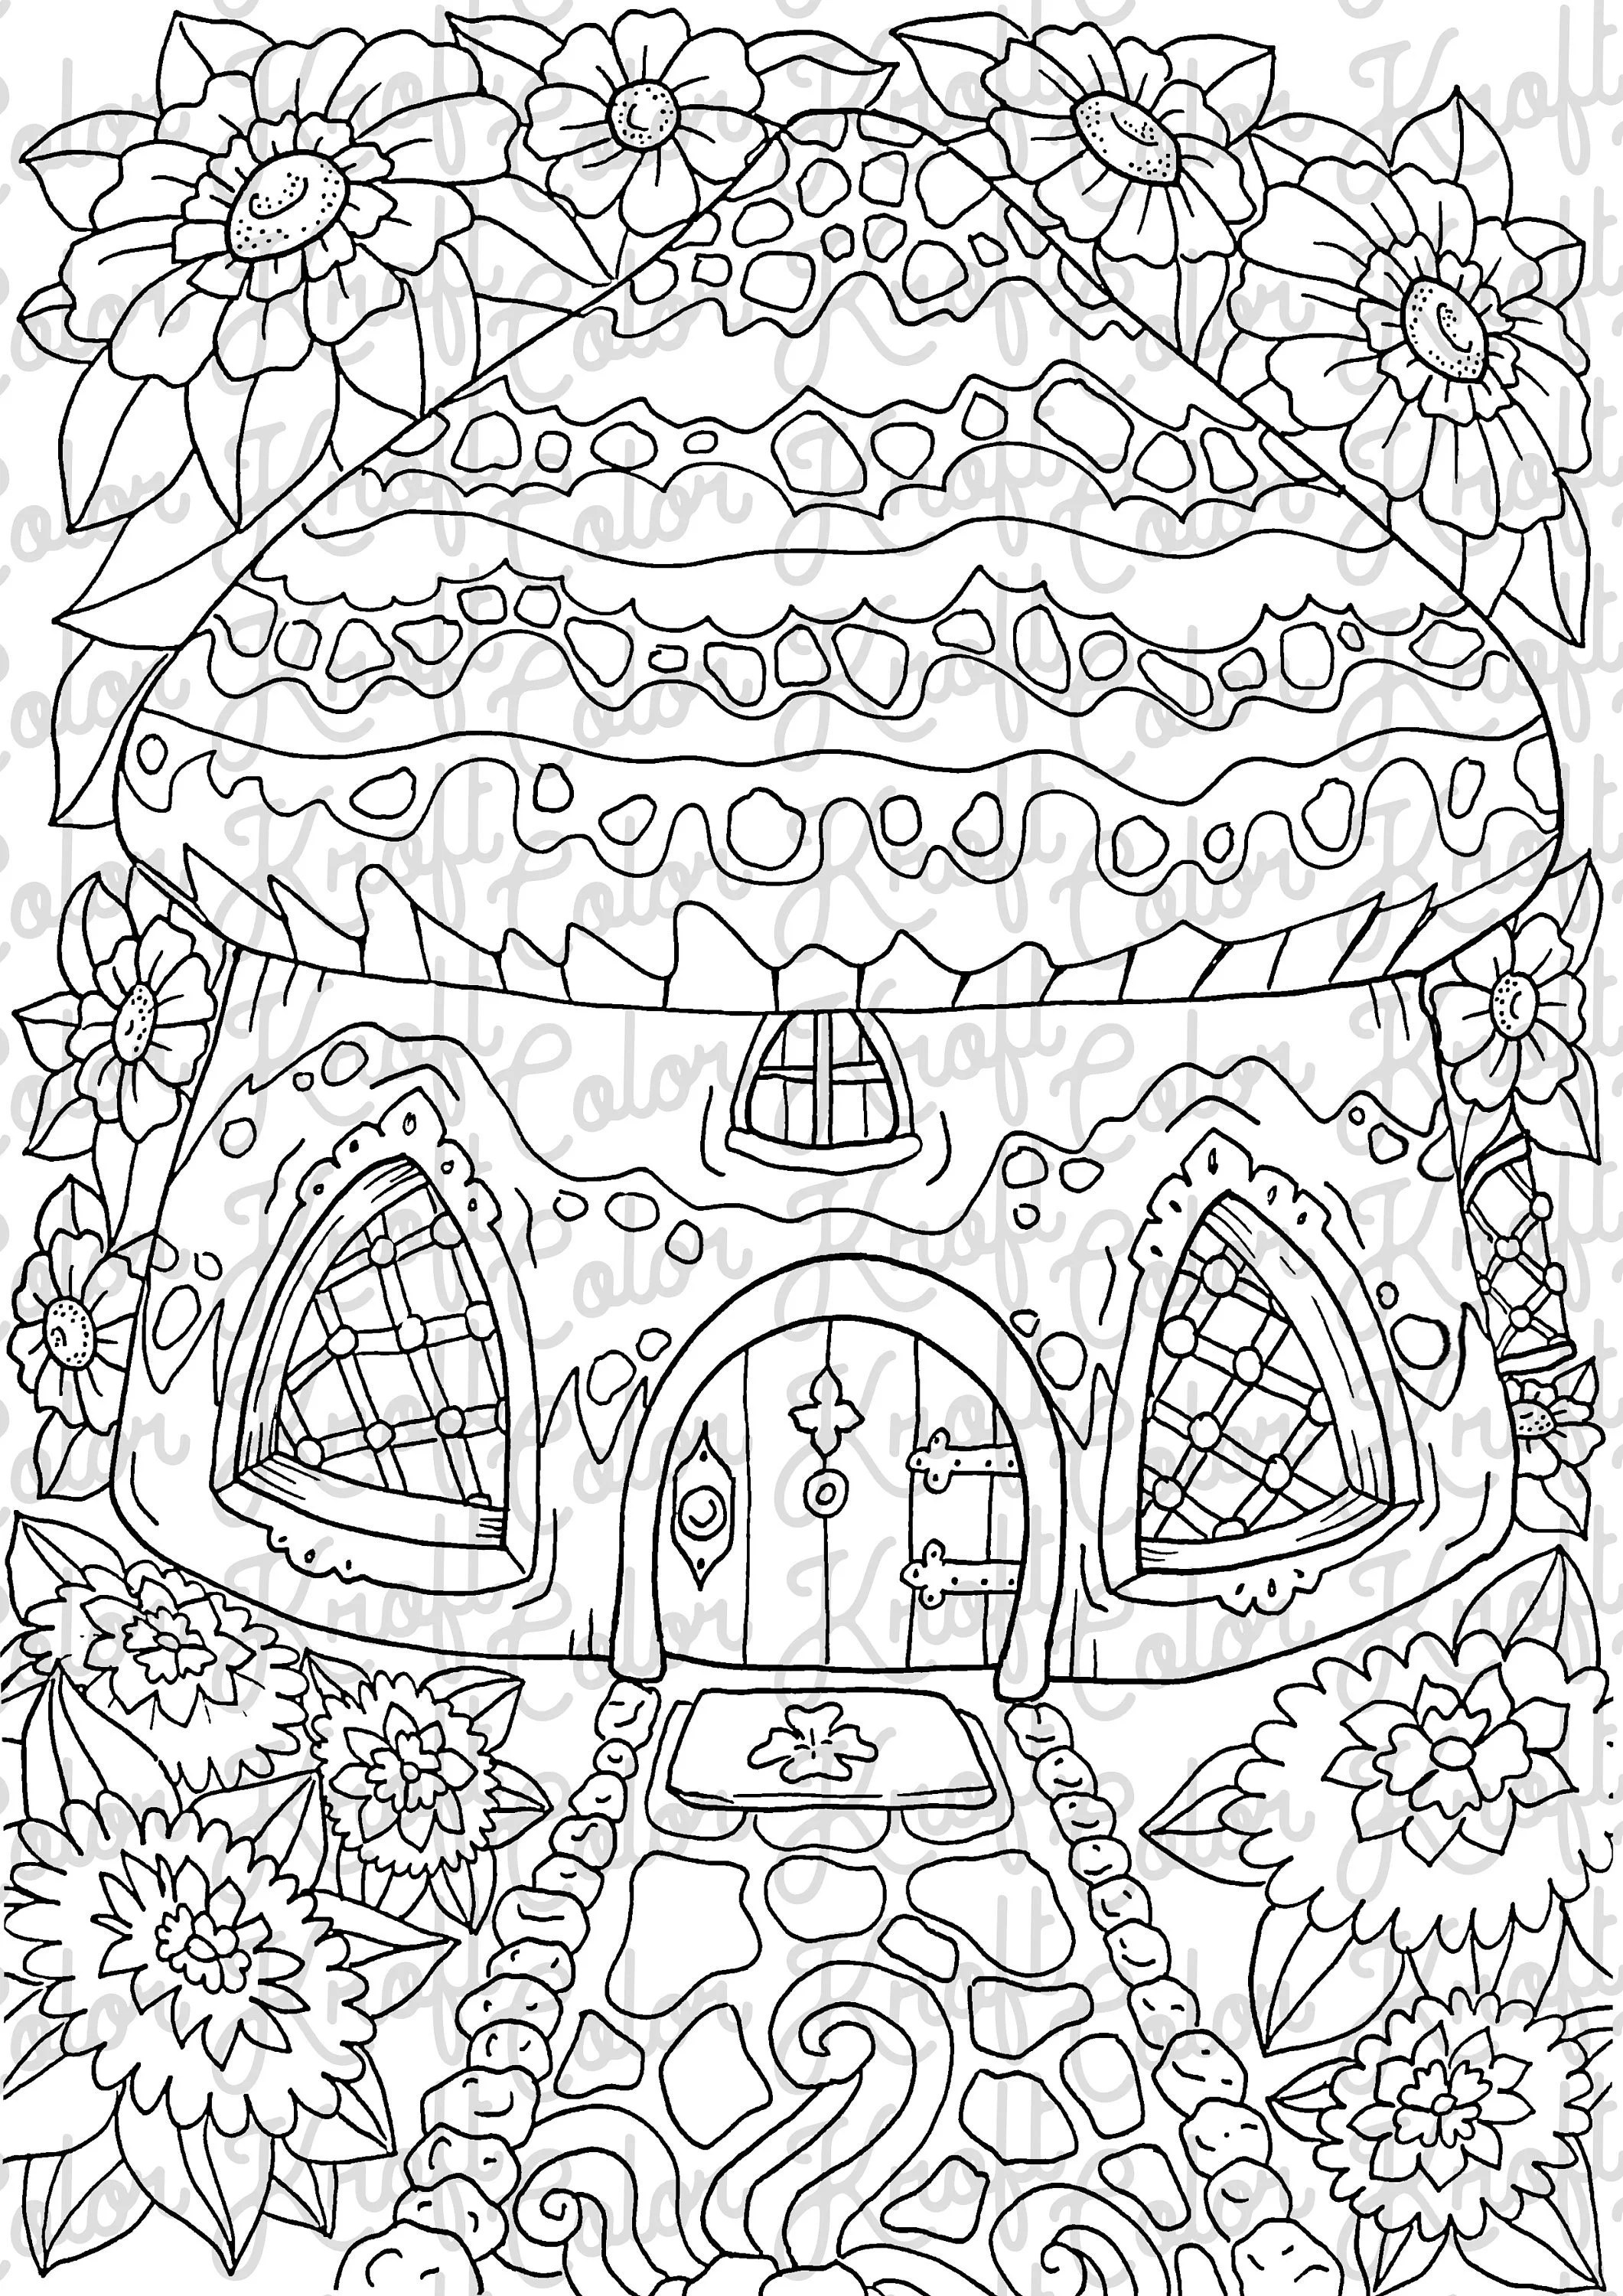 Printable Garden Coloring Pages : printable, garden, coloring, pages, Fairy, Garden, Coloring, Printable